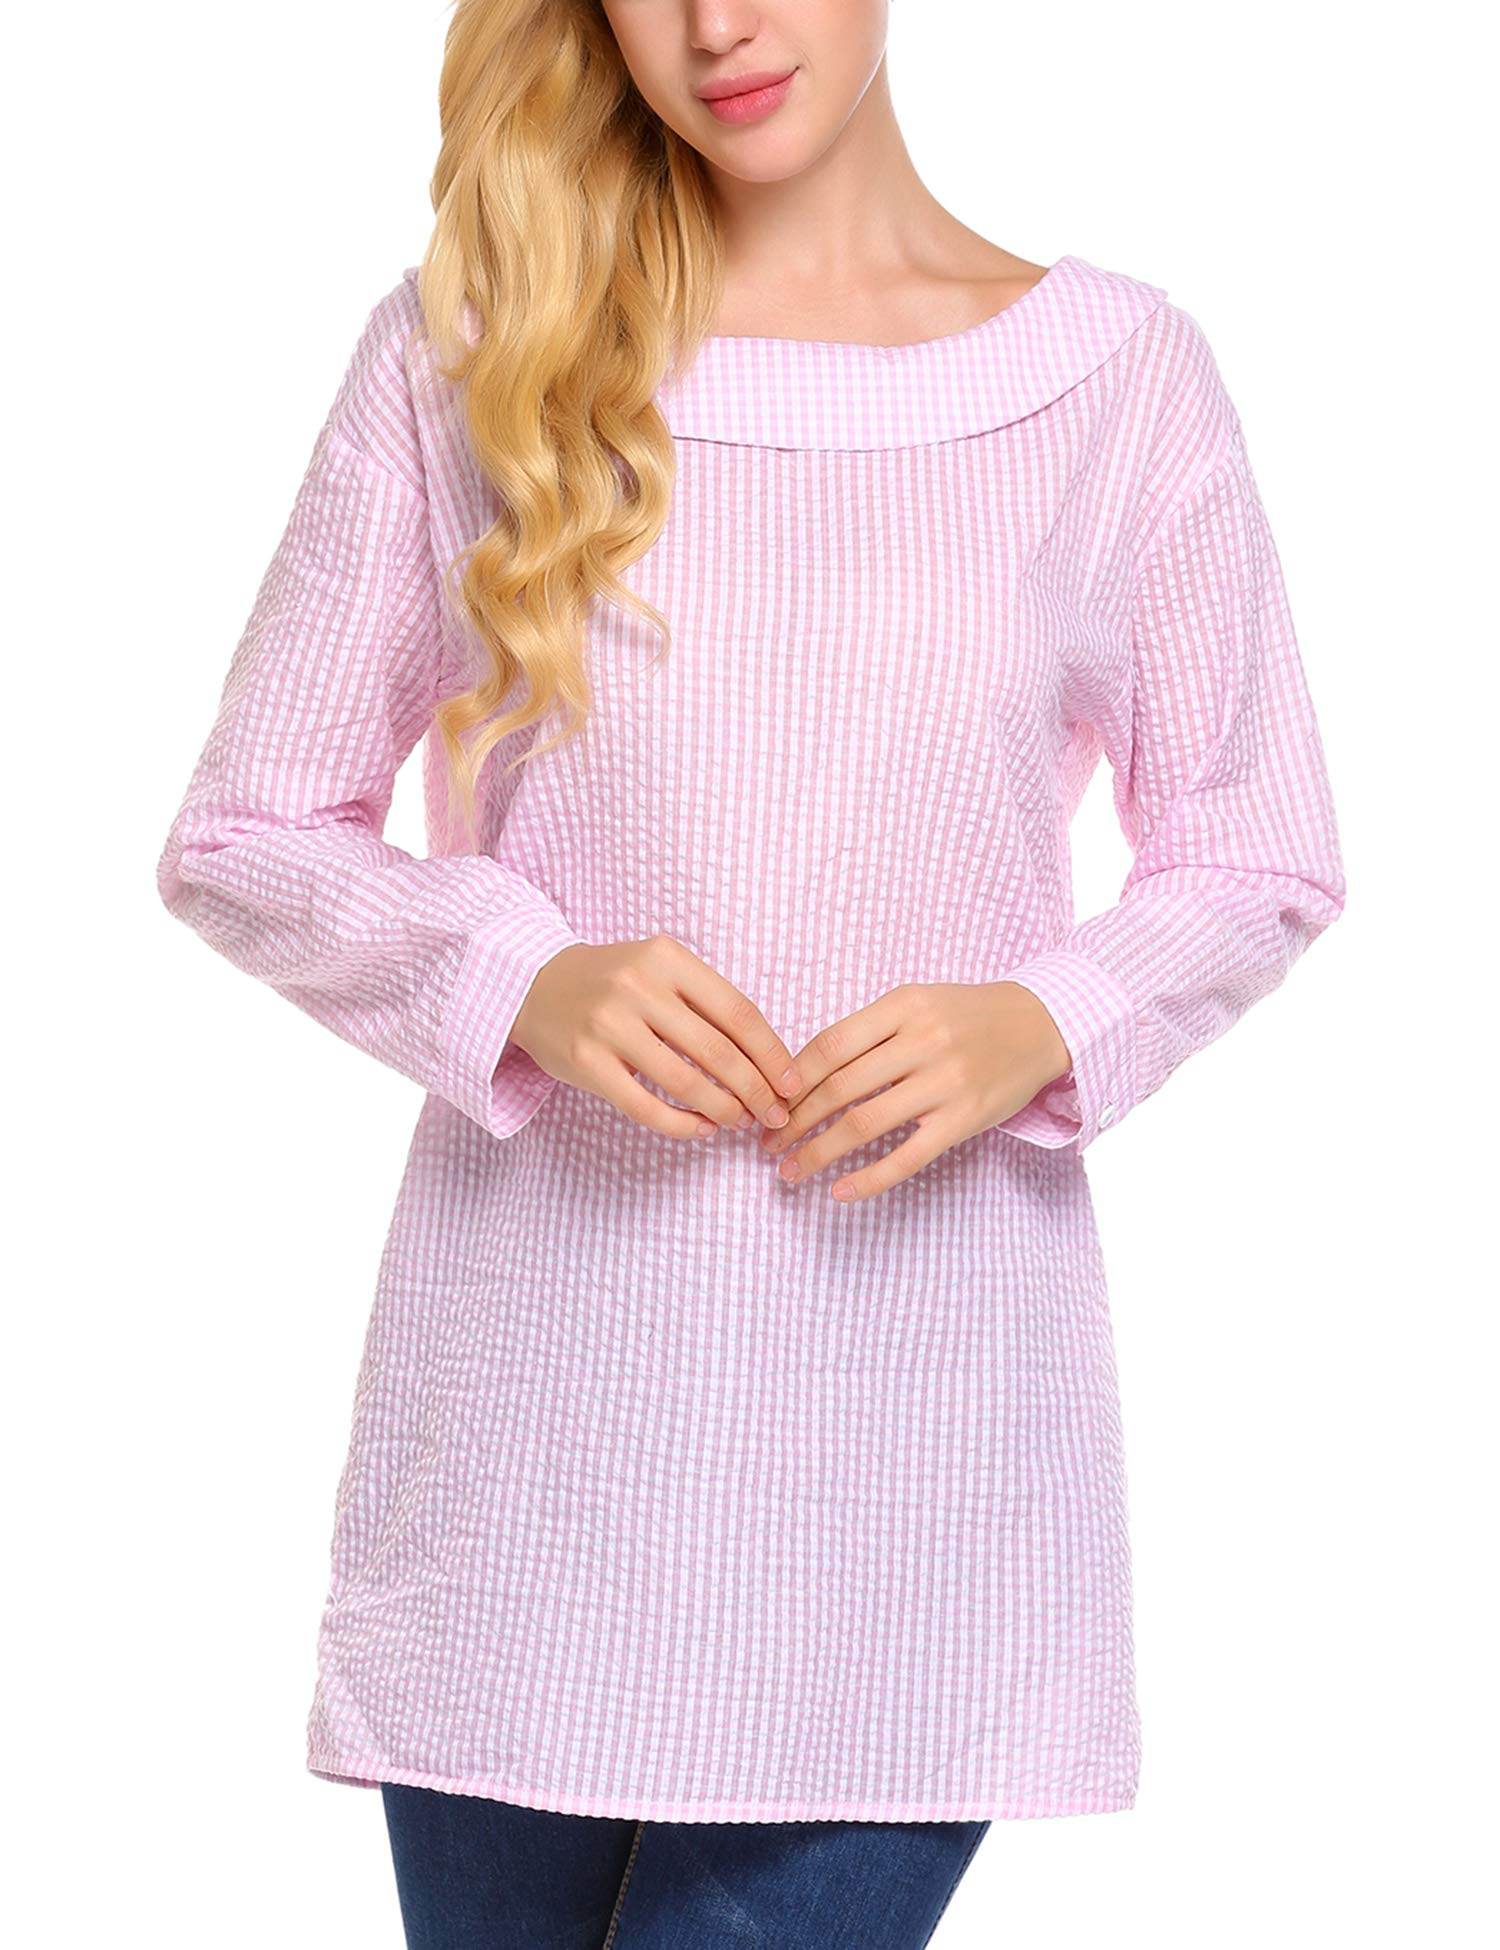 d960c4f7ec6d60 Venena Women's Boatneck Collared Long Tunic Top Shirt(Pink,Large)